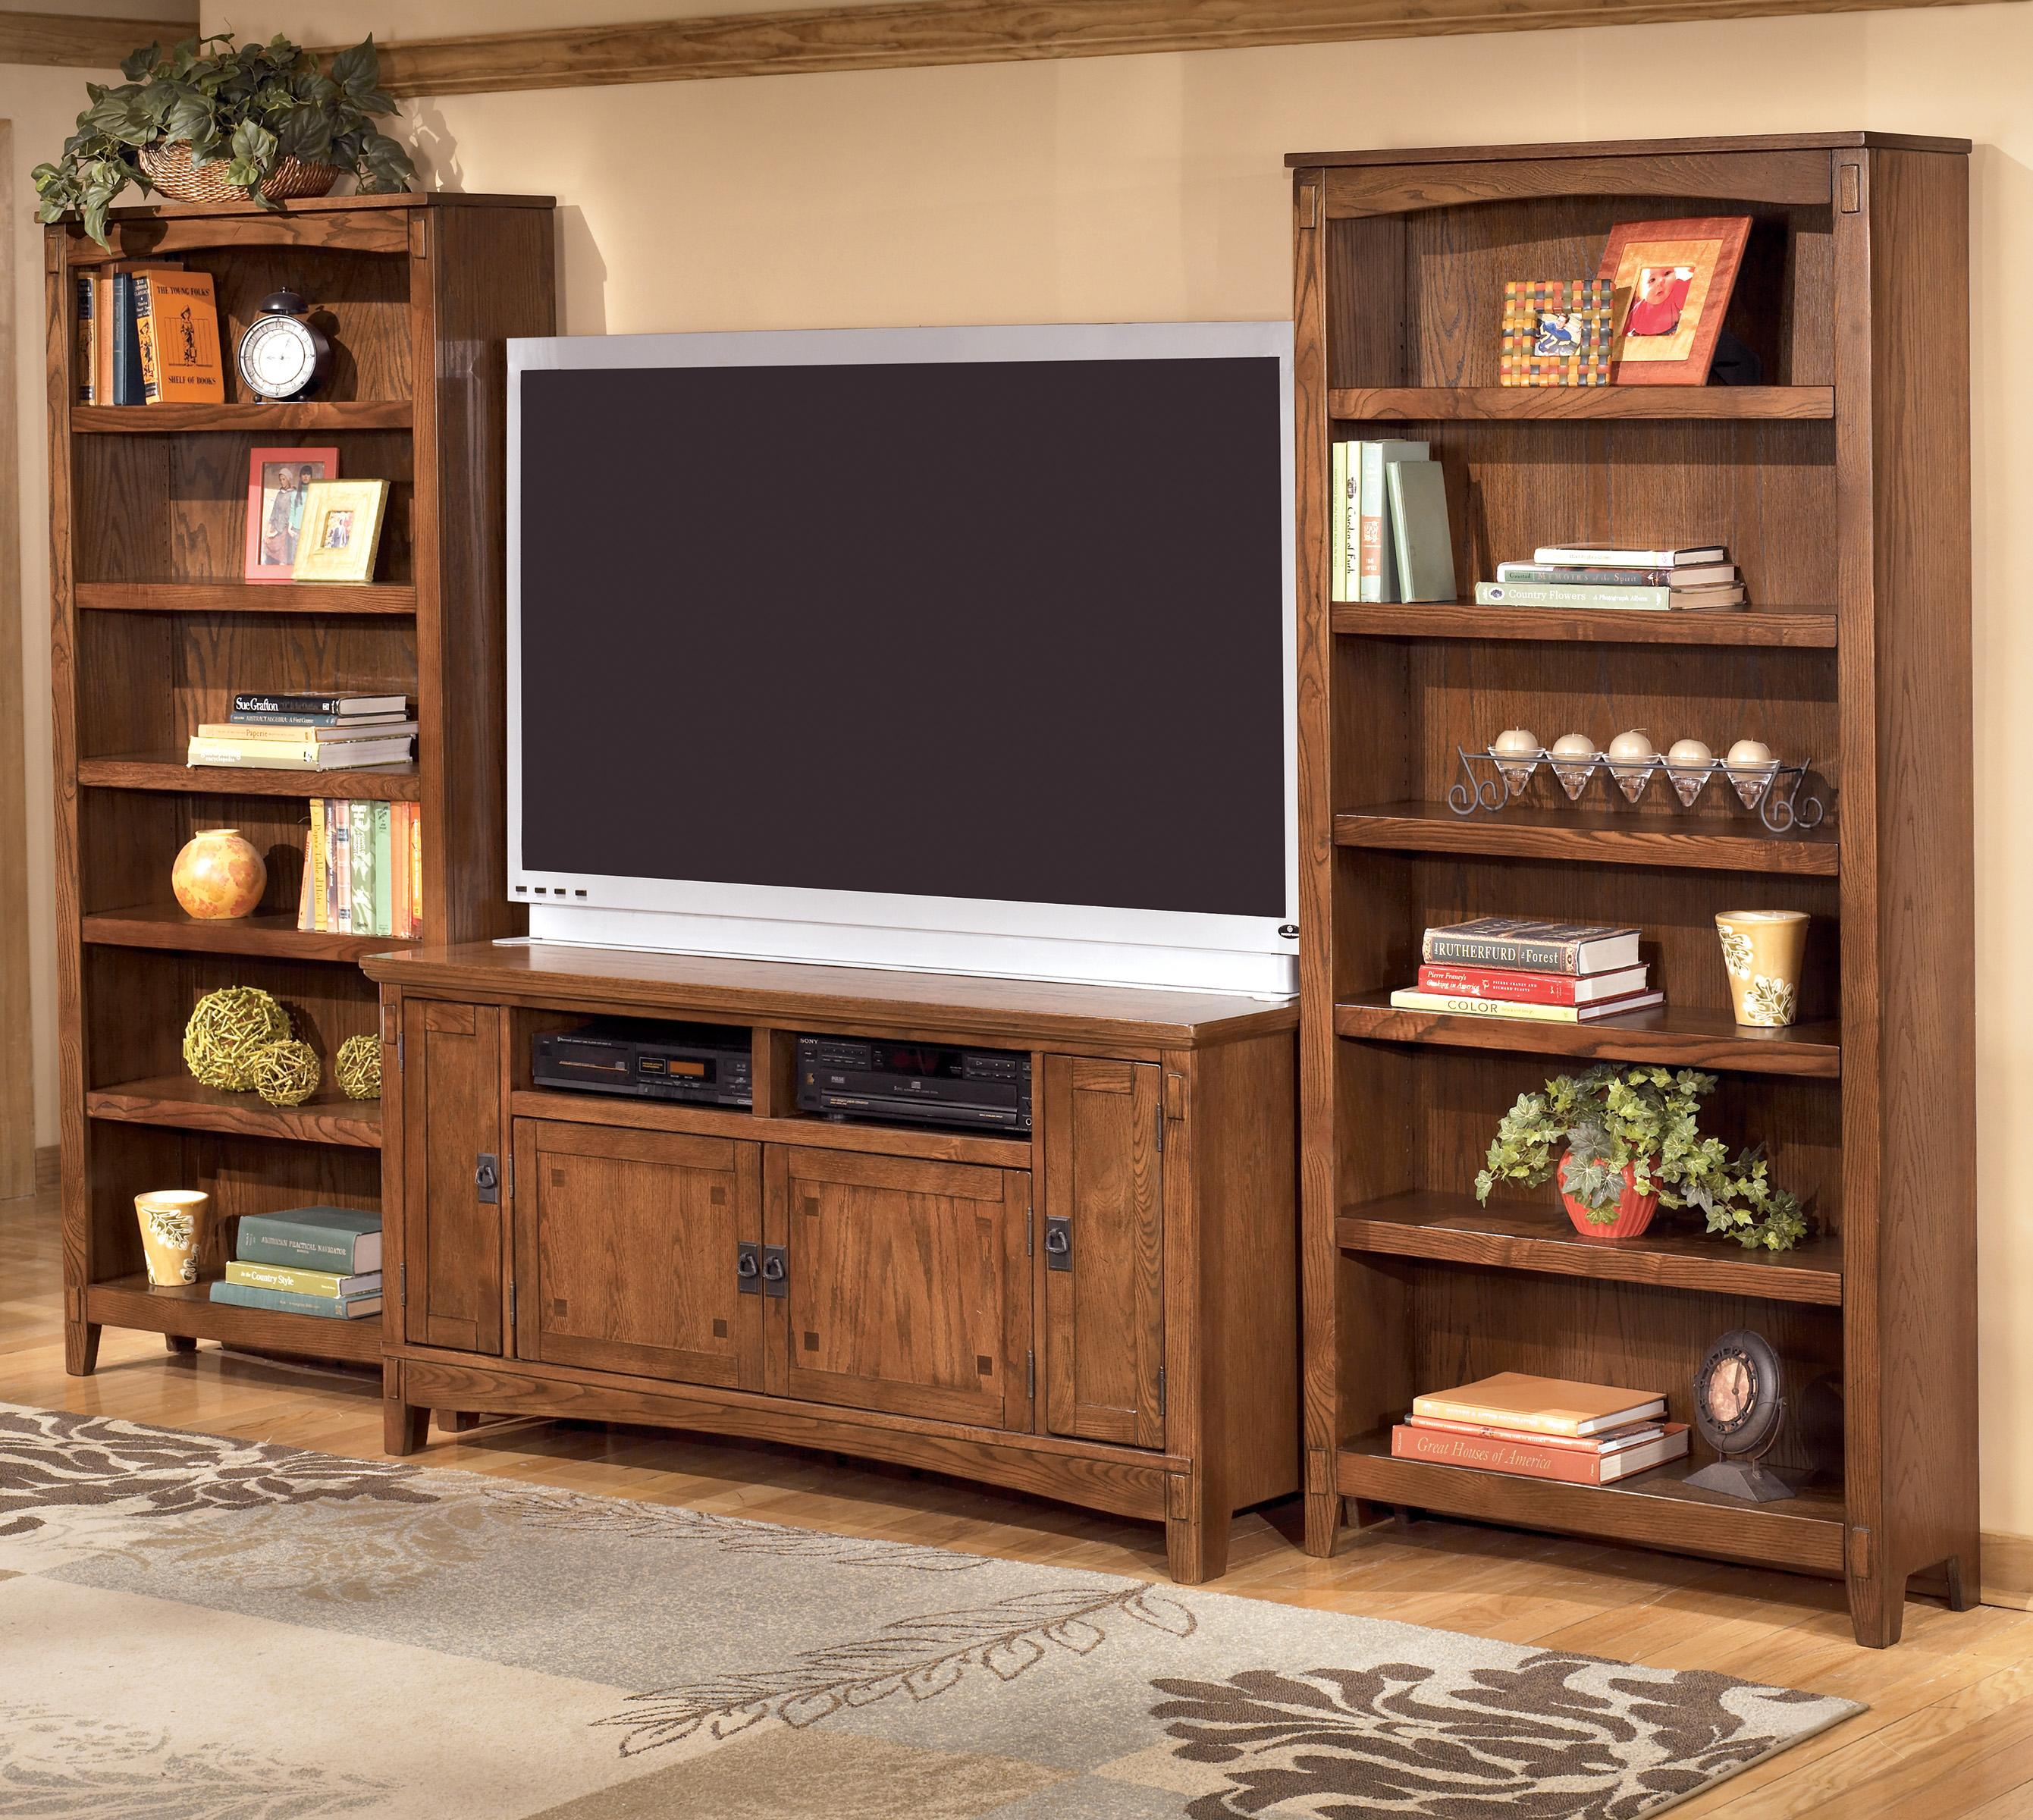 60 Inch TV Stand & 2 Bookcases by Ashley Furniture